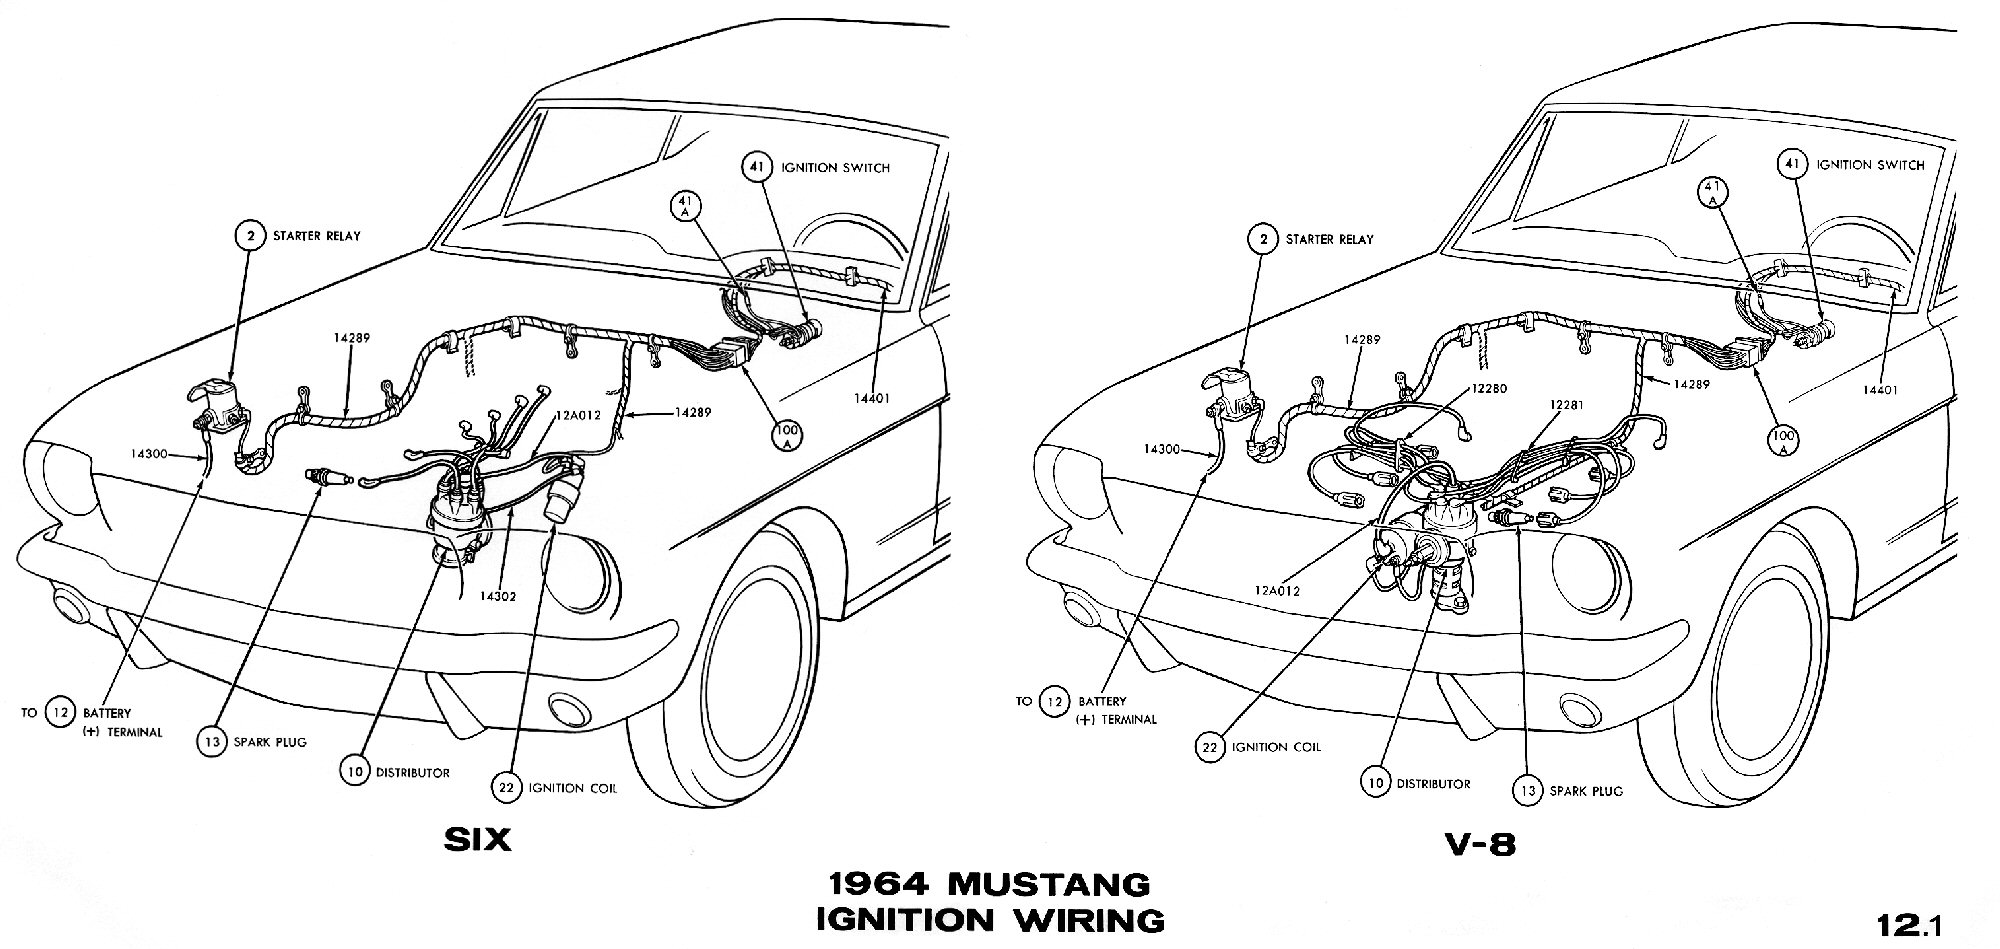 1964 Mustang Wiring Diagrams Average Joe Restoration Hot Rod Ignition Diagram With Fuse V 6 8 Starter Relay